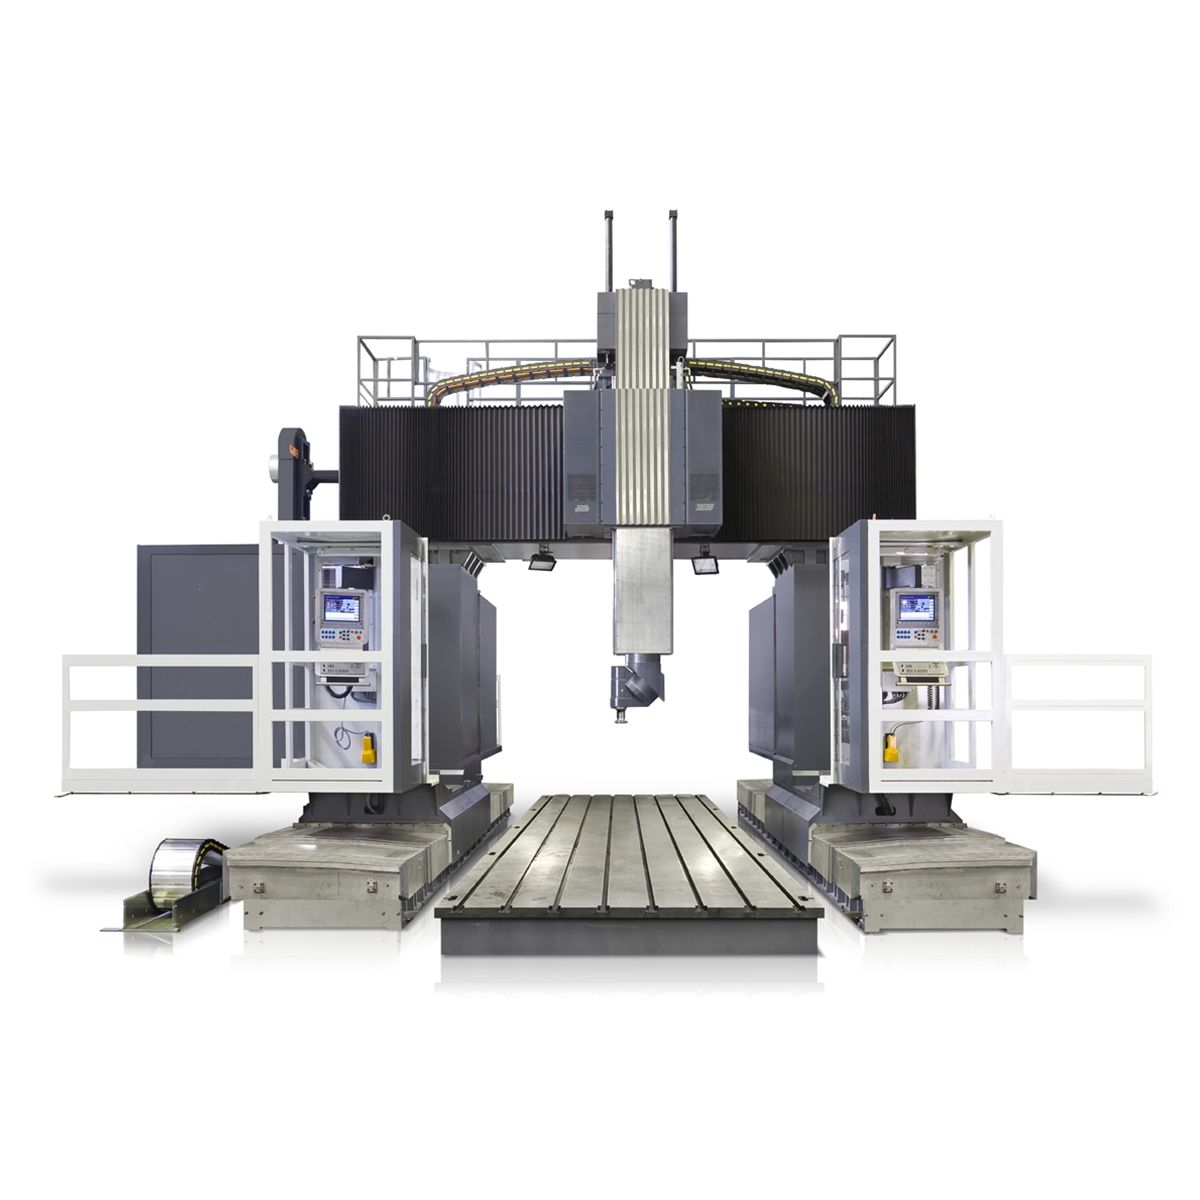 Factory Outlet Excellent Quality Plano Gantry Milling Machine